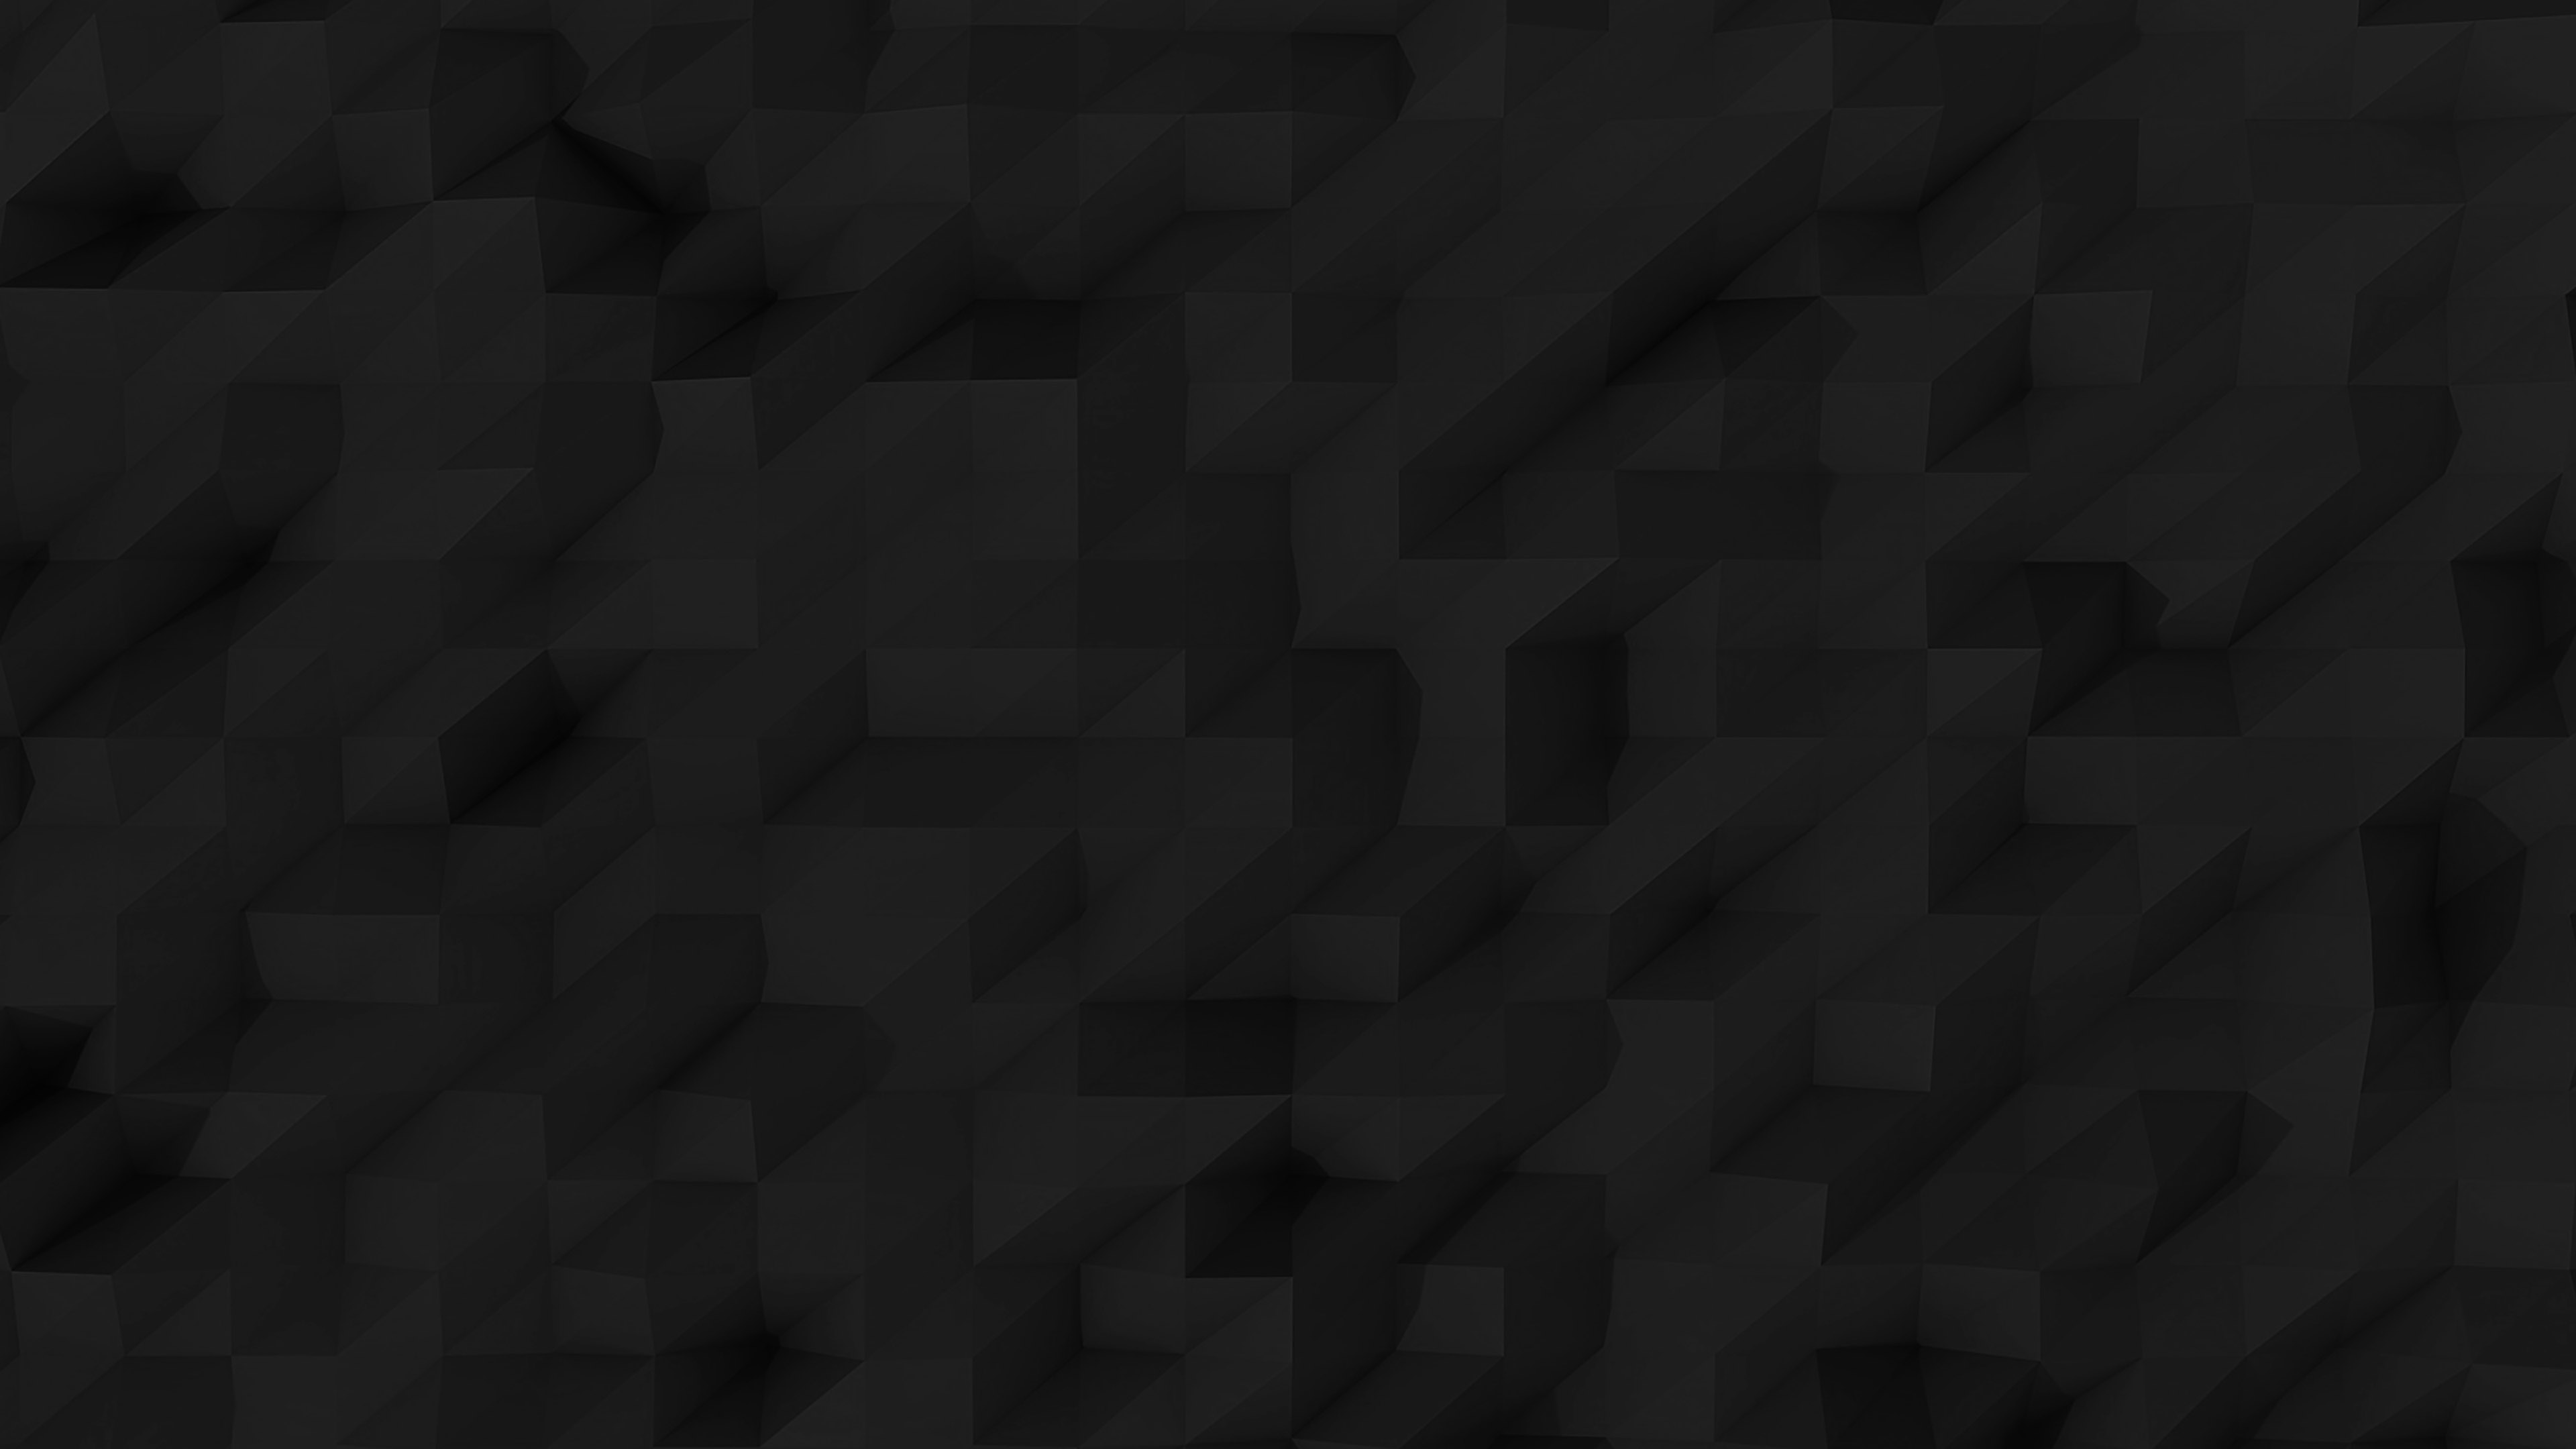 vd73-low-poly-dark-night-abstract-fun-pattern - Papers.co